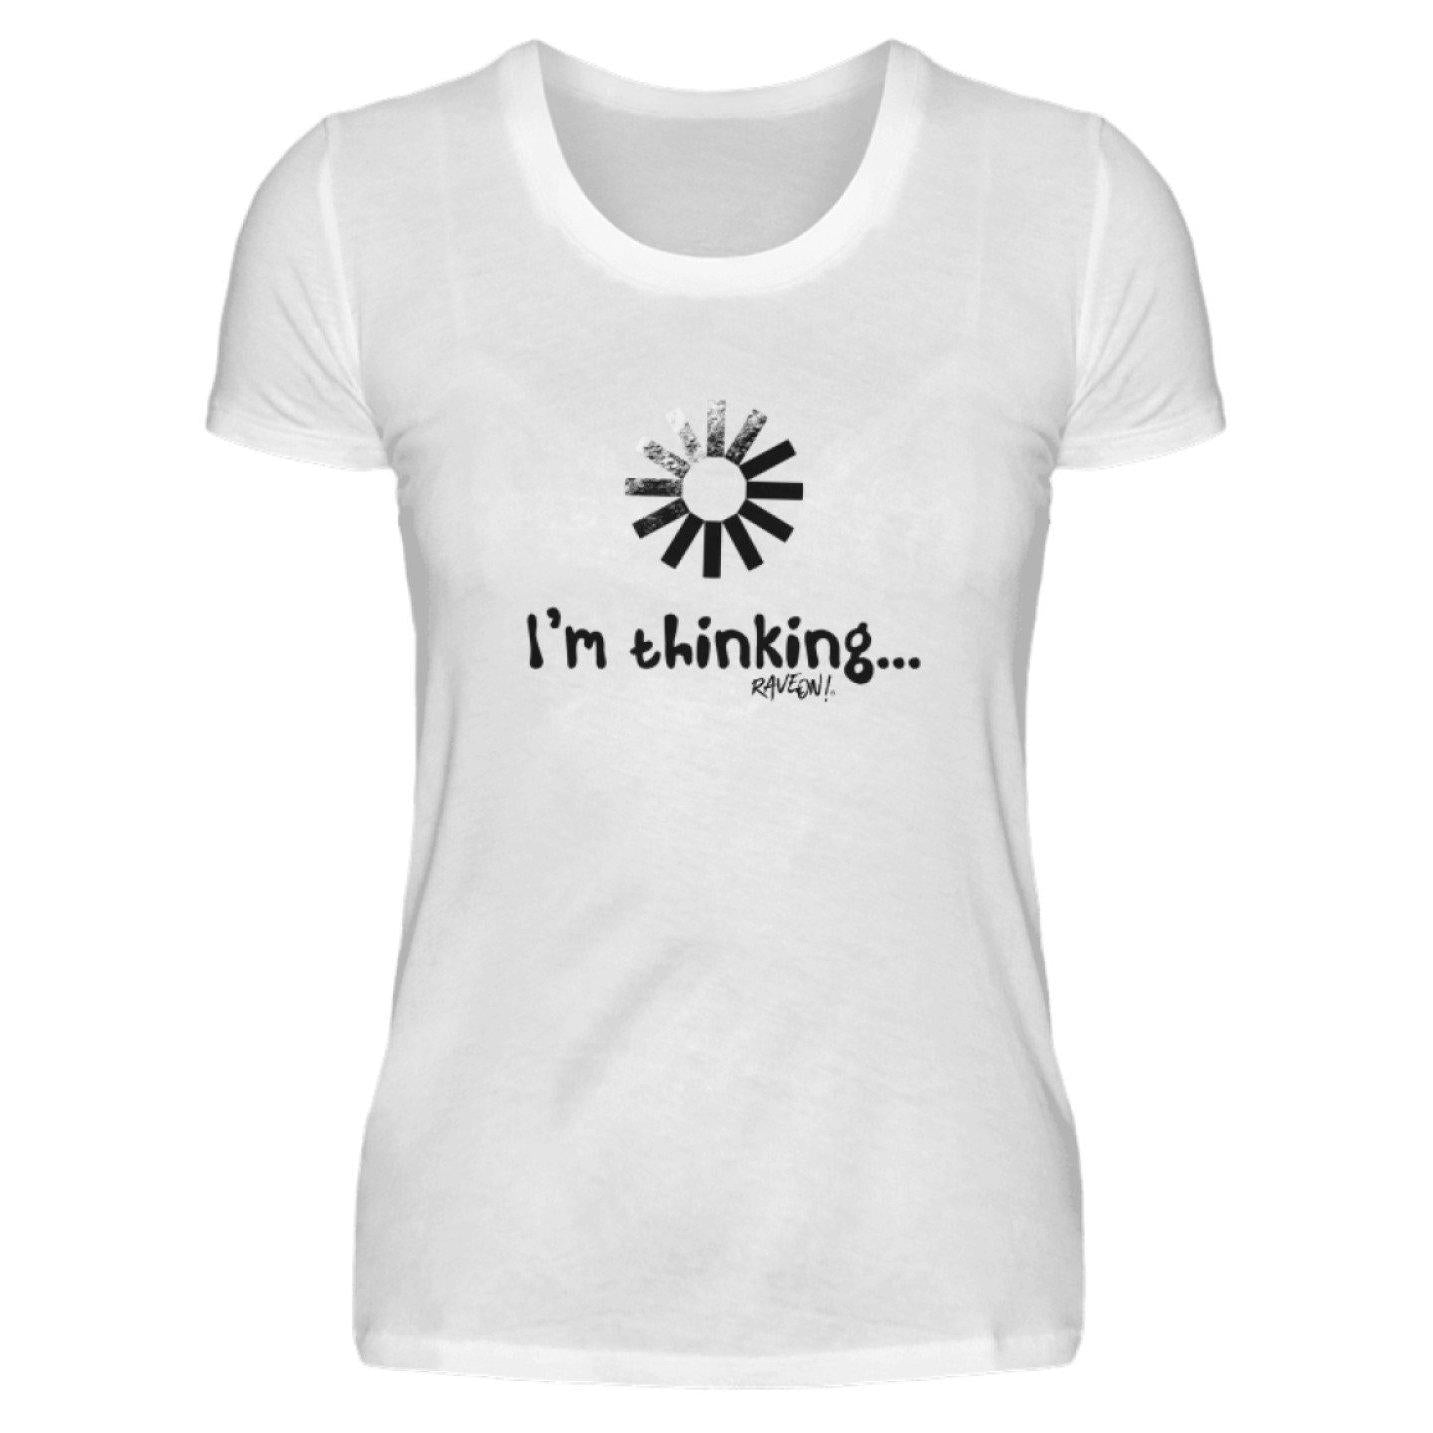 I´m thinking - Rave On!® - Damenshirt Damen Basic T-Shirt White / S - Rave On!® der Club & Techno Szene Shop für Coole Junge Mode Streetwear Style & Fashion Outfits + Sexy Festival 420 Stuff